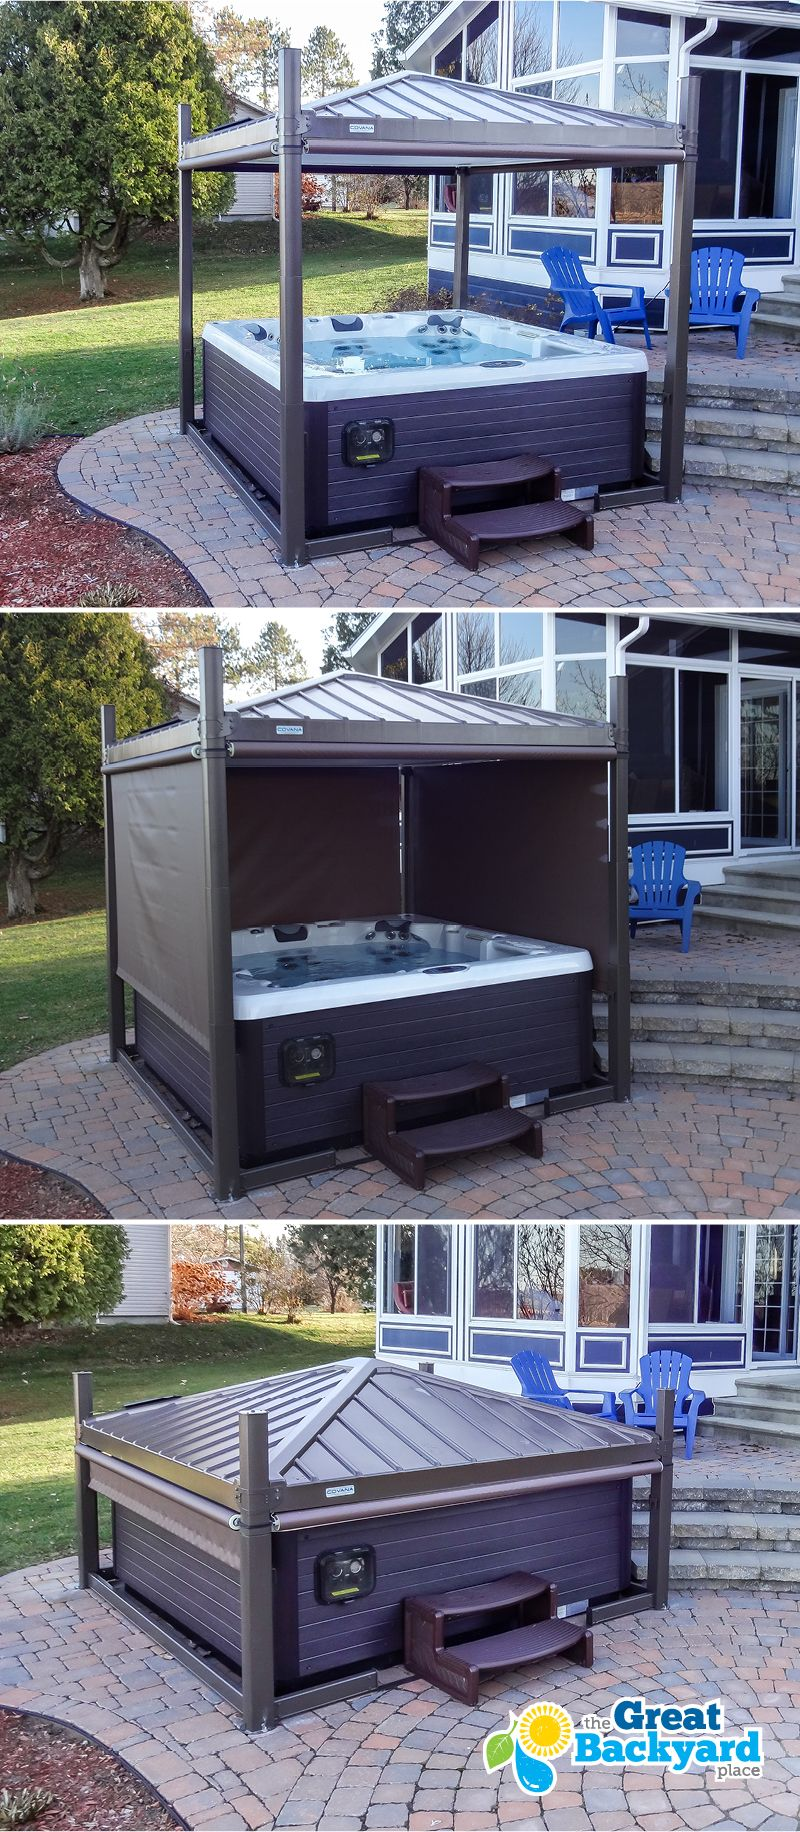 You are not dreaming! The Covana OASIS is not only a hot tub cover ...